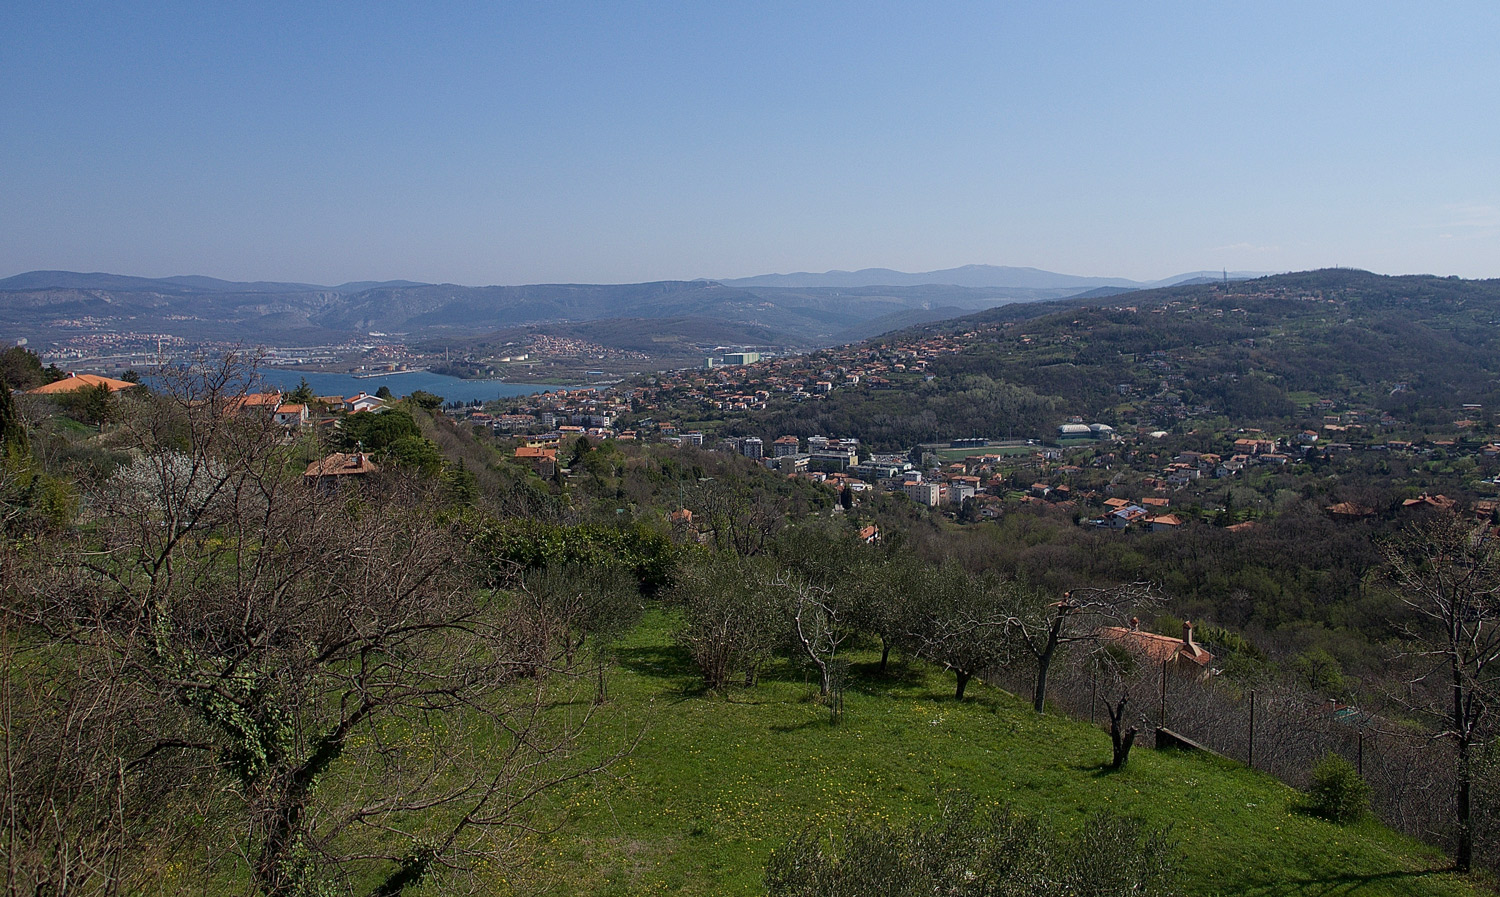 View from the hilltop